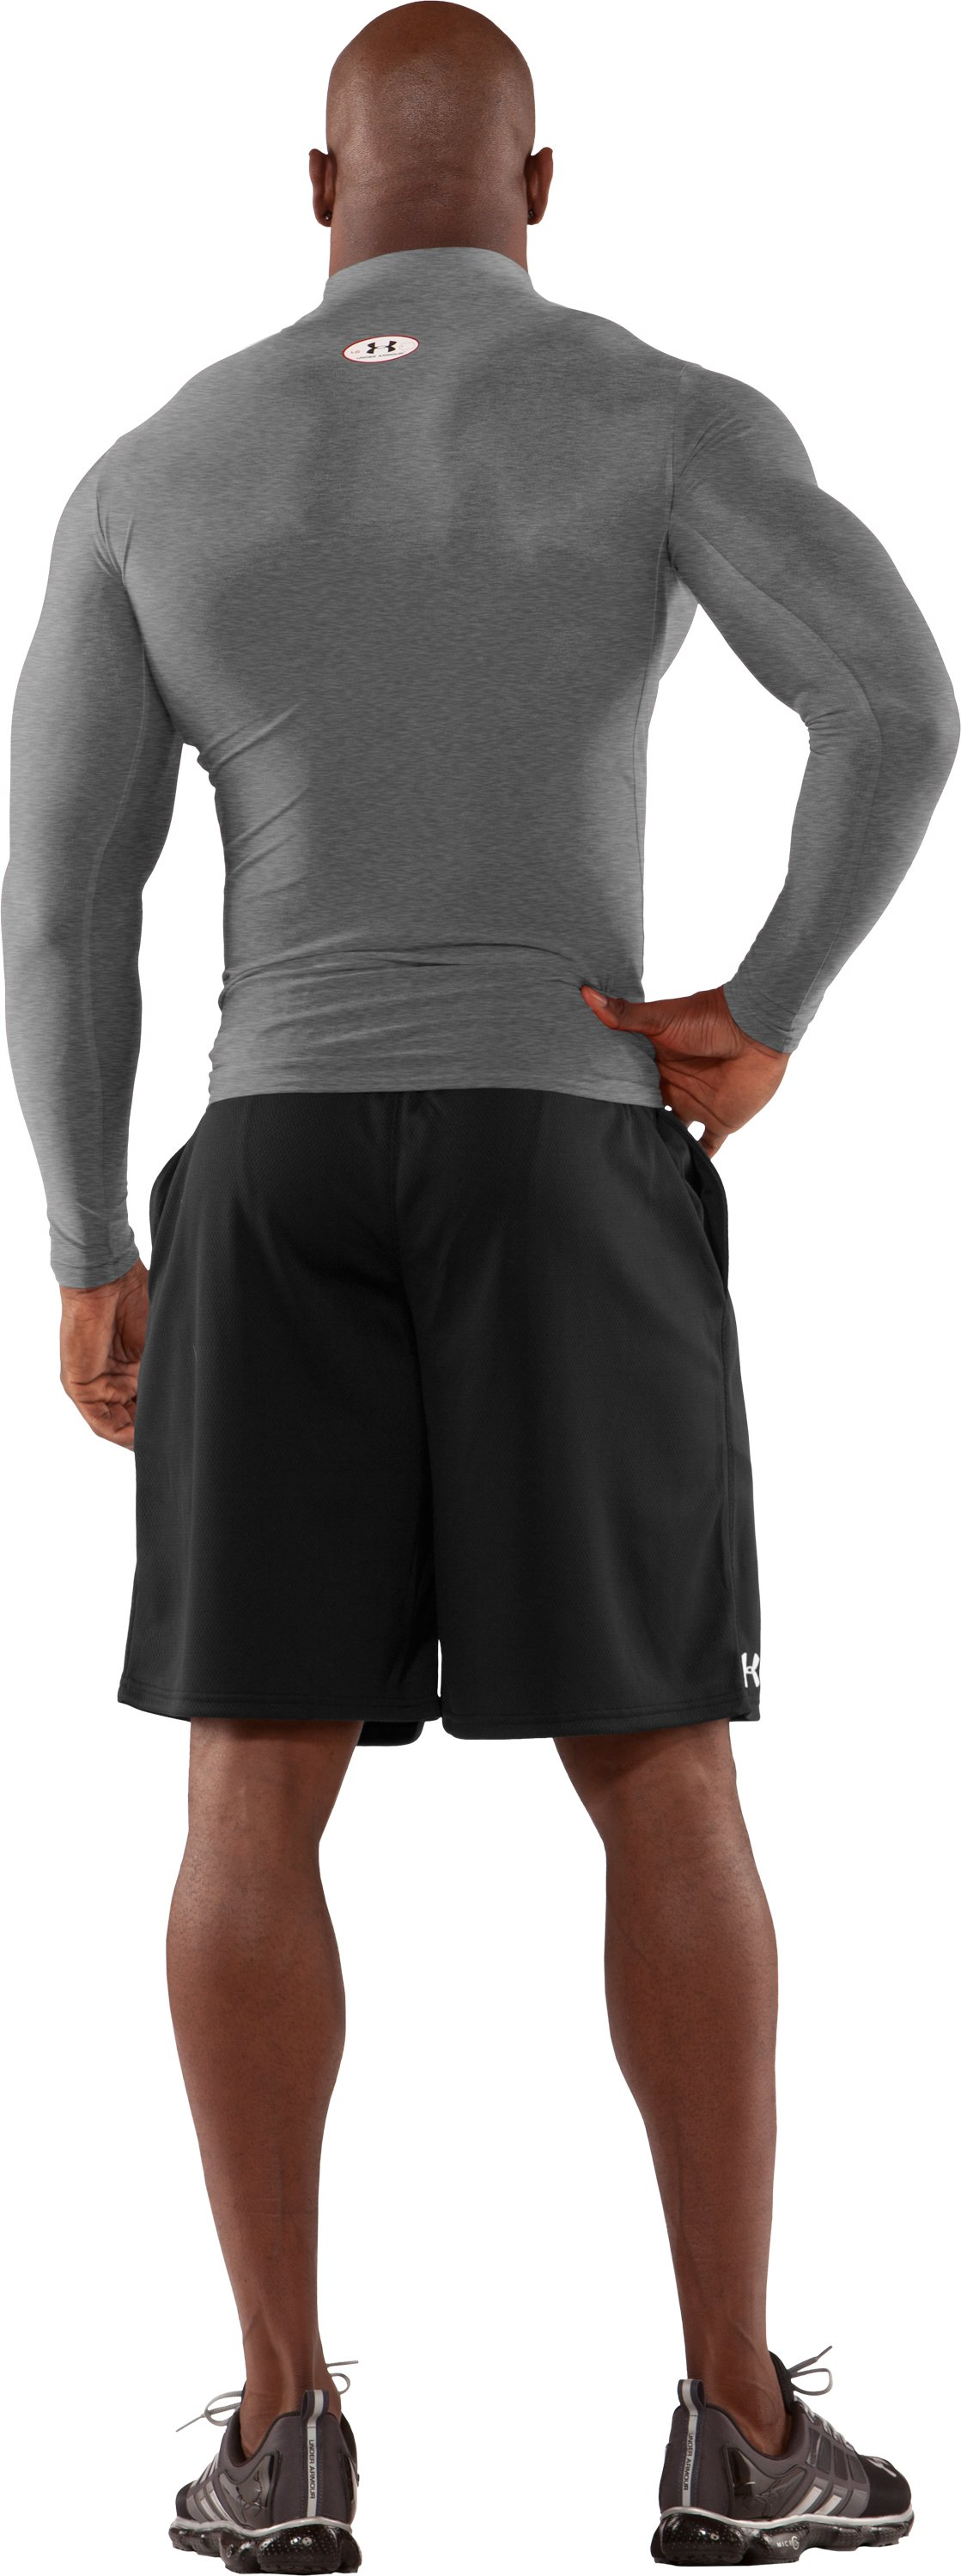 Men's ColdGear® Long Sleeve Compression Mock, Medium Gray Heather, Back